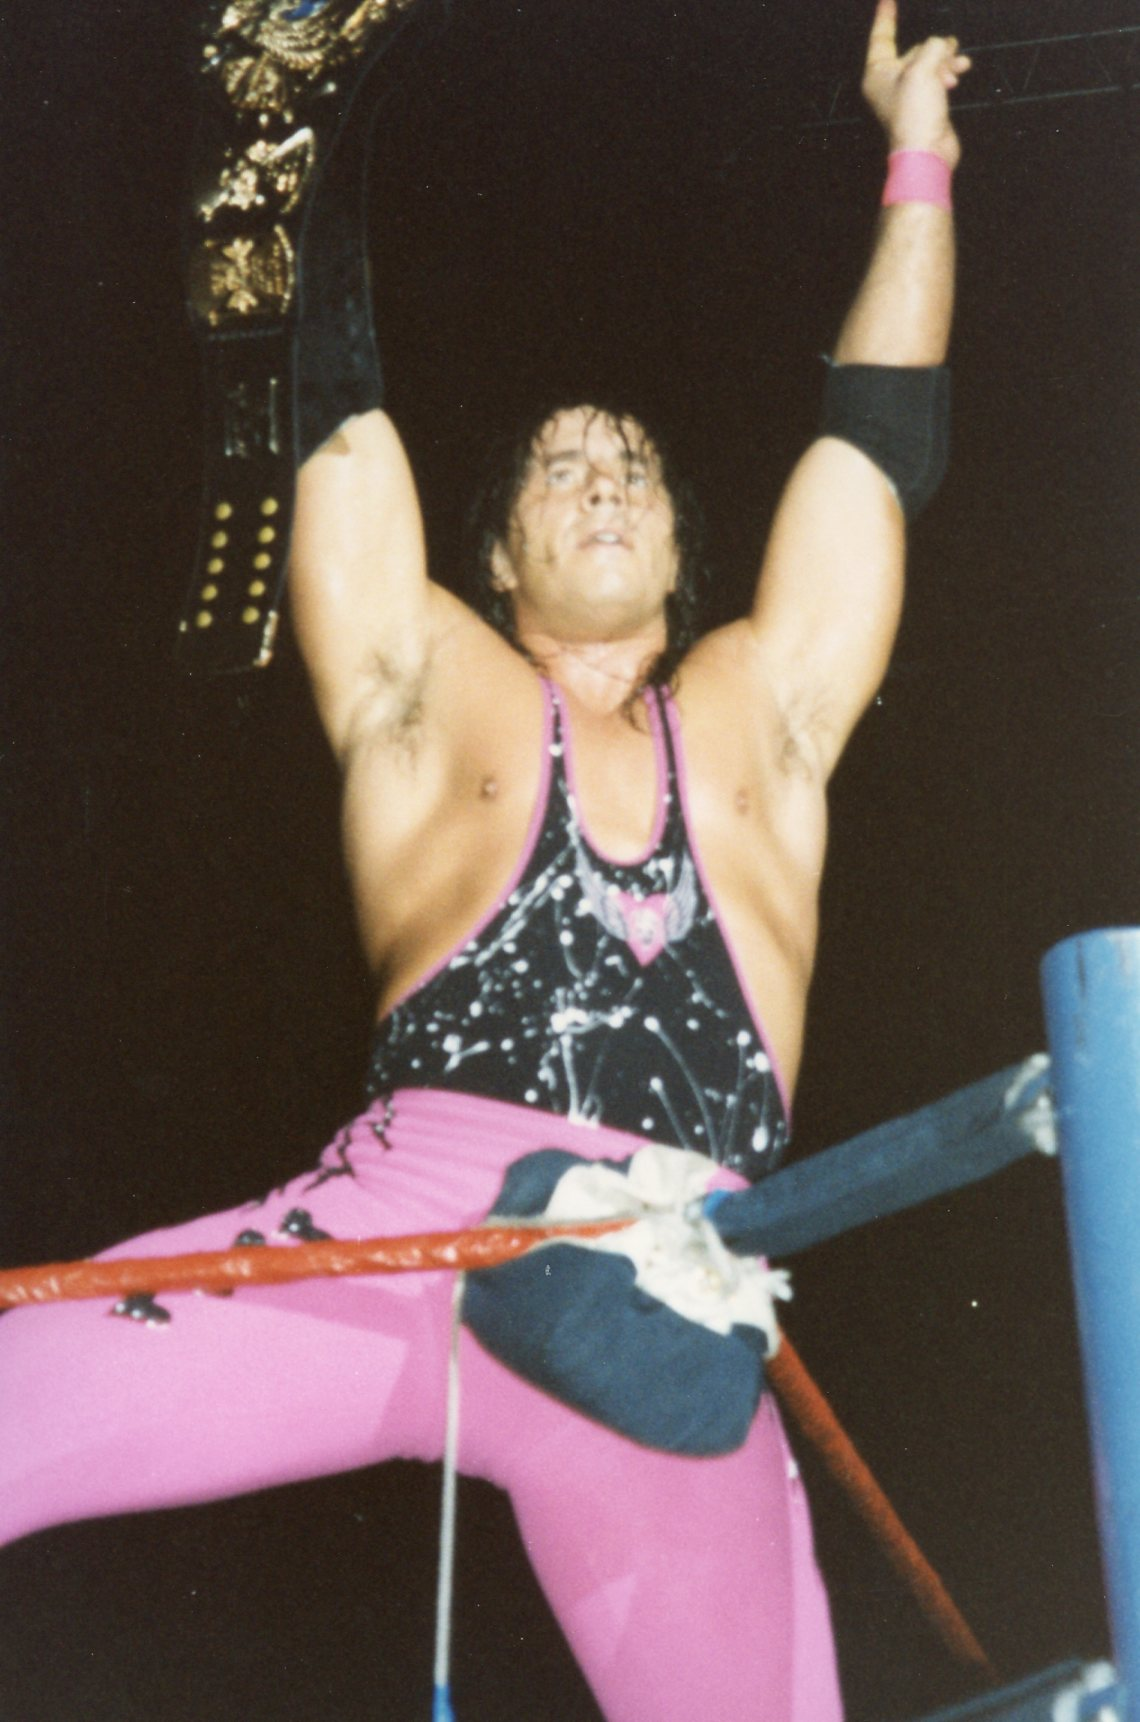 Bret Hart poses before defending his WWF Championship against Owen Hart at the Wembley Arena in London.. Taken 9/14/1994. Photo by Mandy Coombes, CC BY-SA 2.0 , via Wikimedia Commo